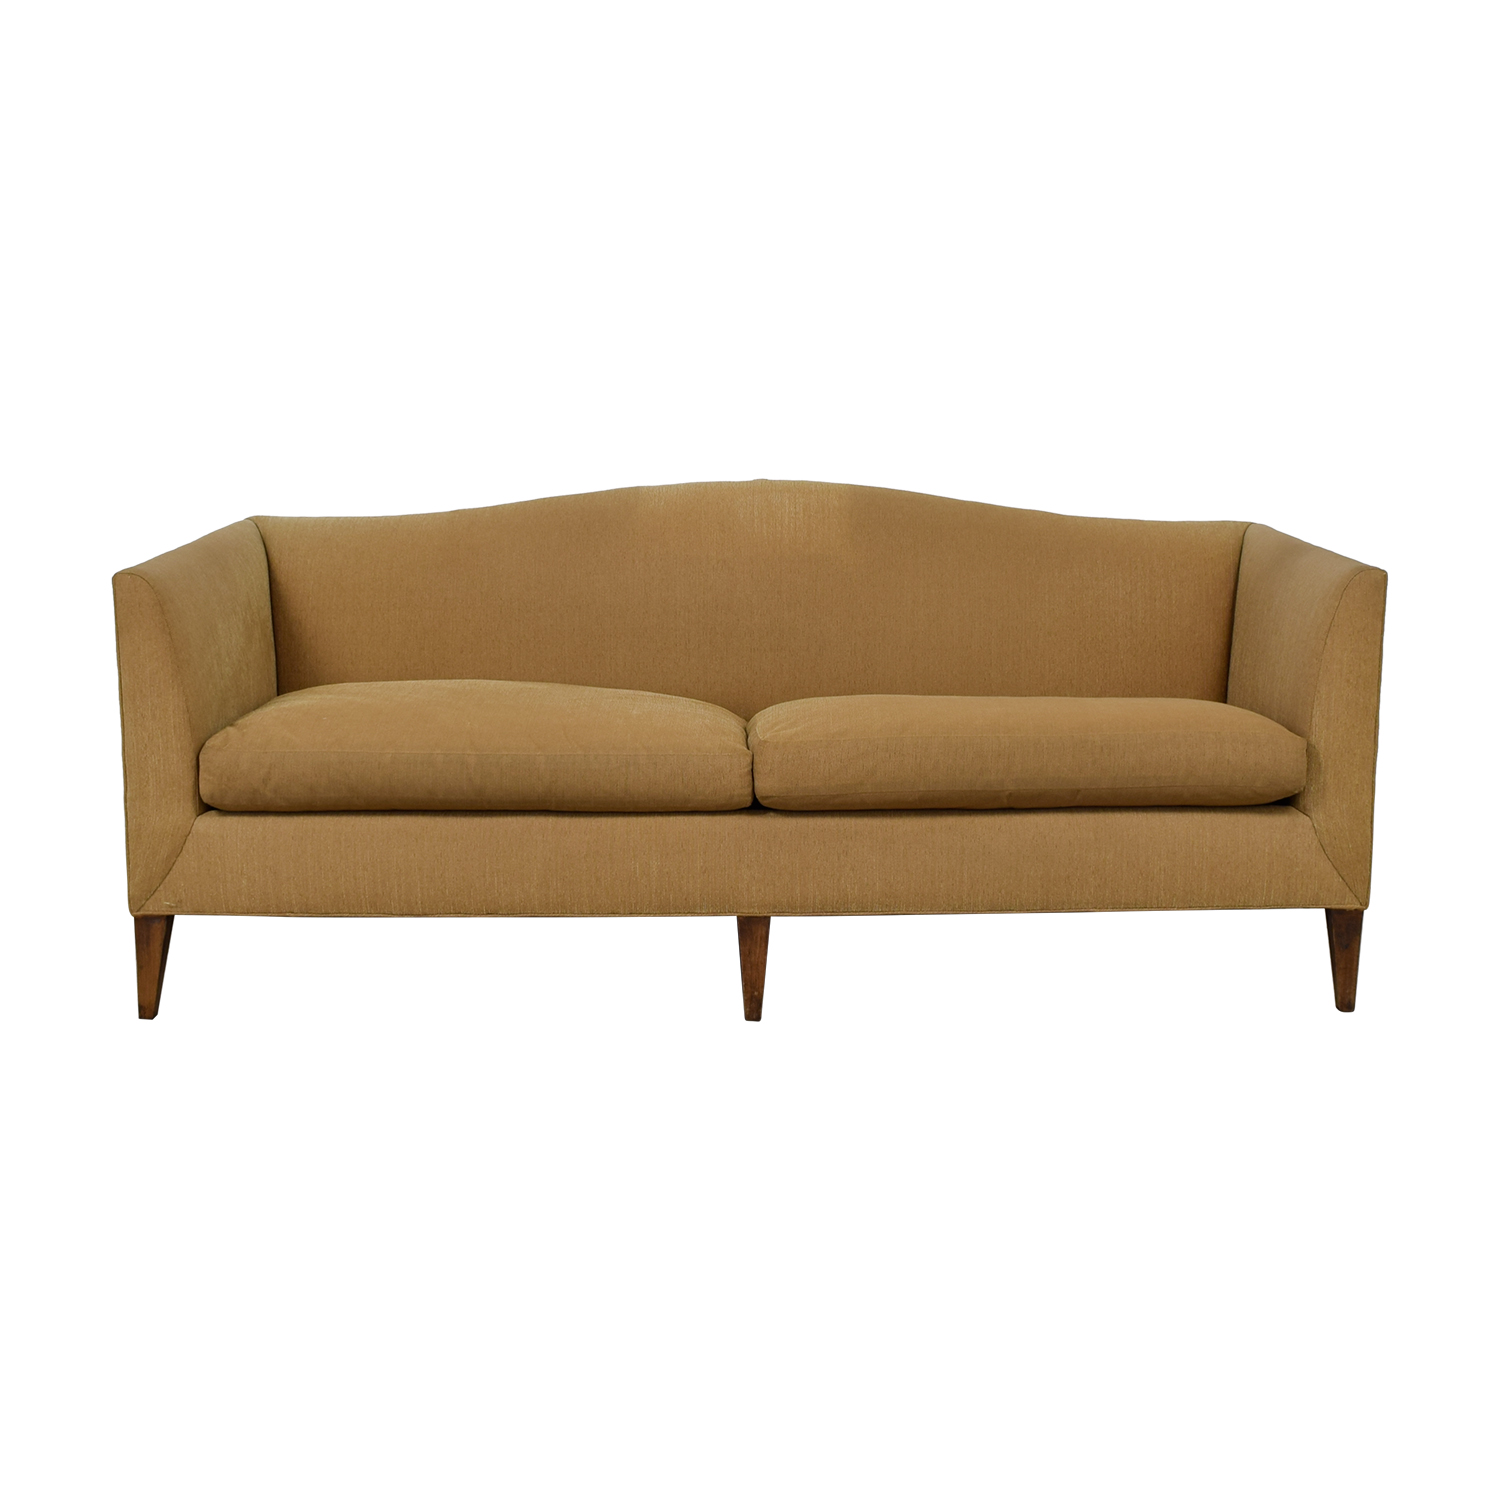 Baker Beige Two-Cushion Sofa / Classic Sofas